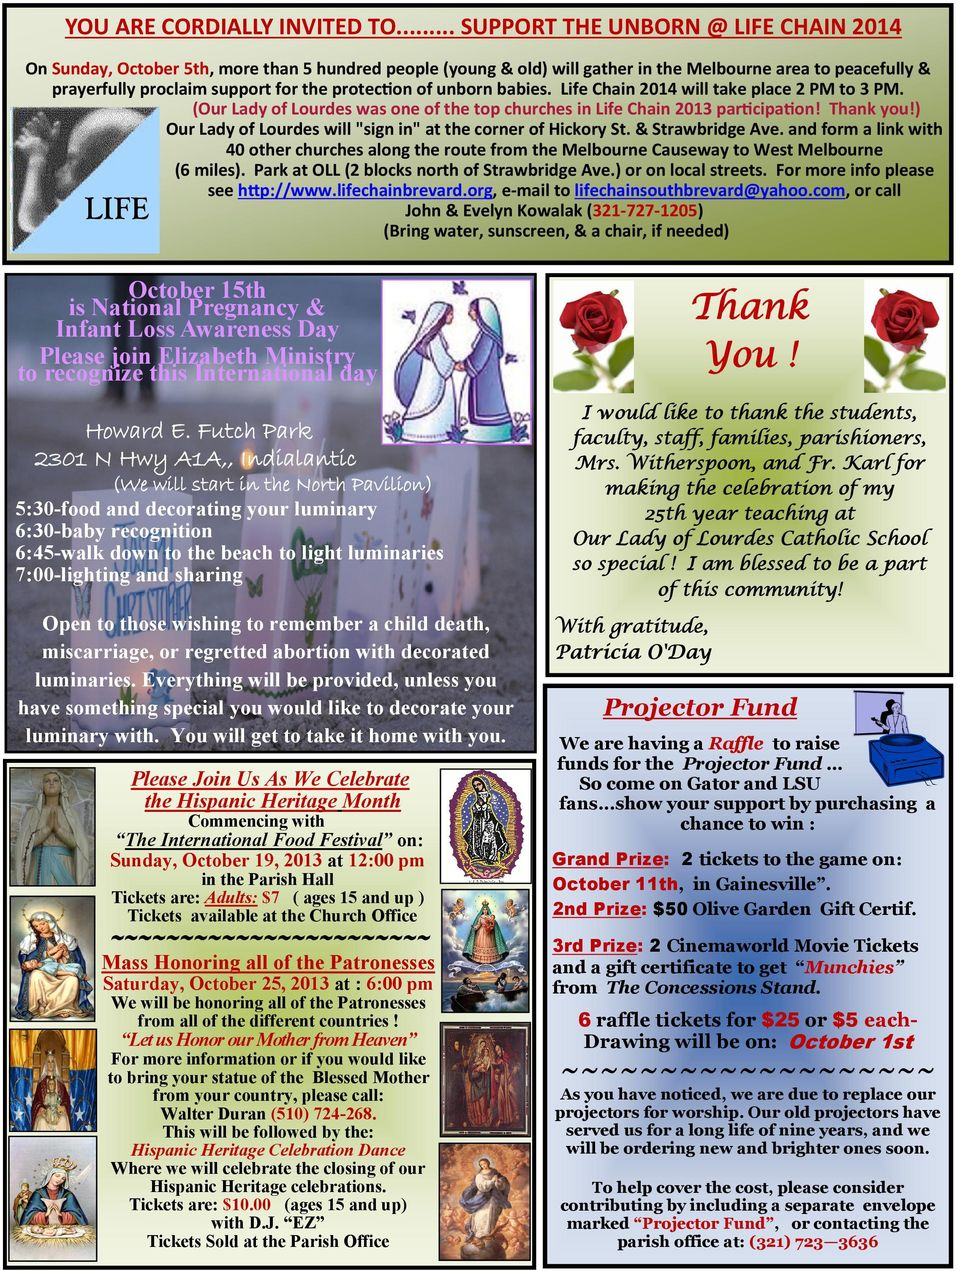 on of unborn babies. Life Chain 2014 will take place 2 PM to 3 PM. (Our Lady of Lourdes was one of the top churches in Life Chain 2013 par cipa on! Thank you!